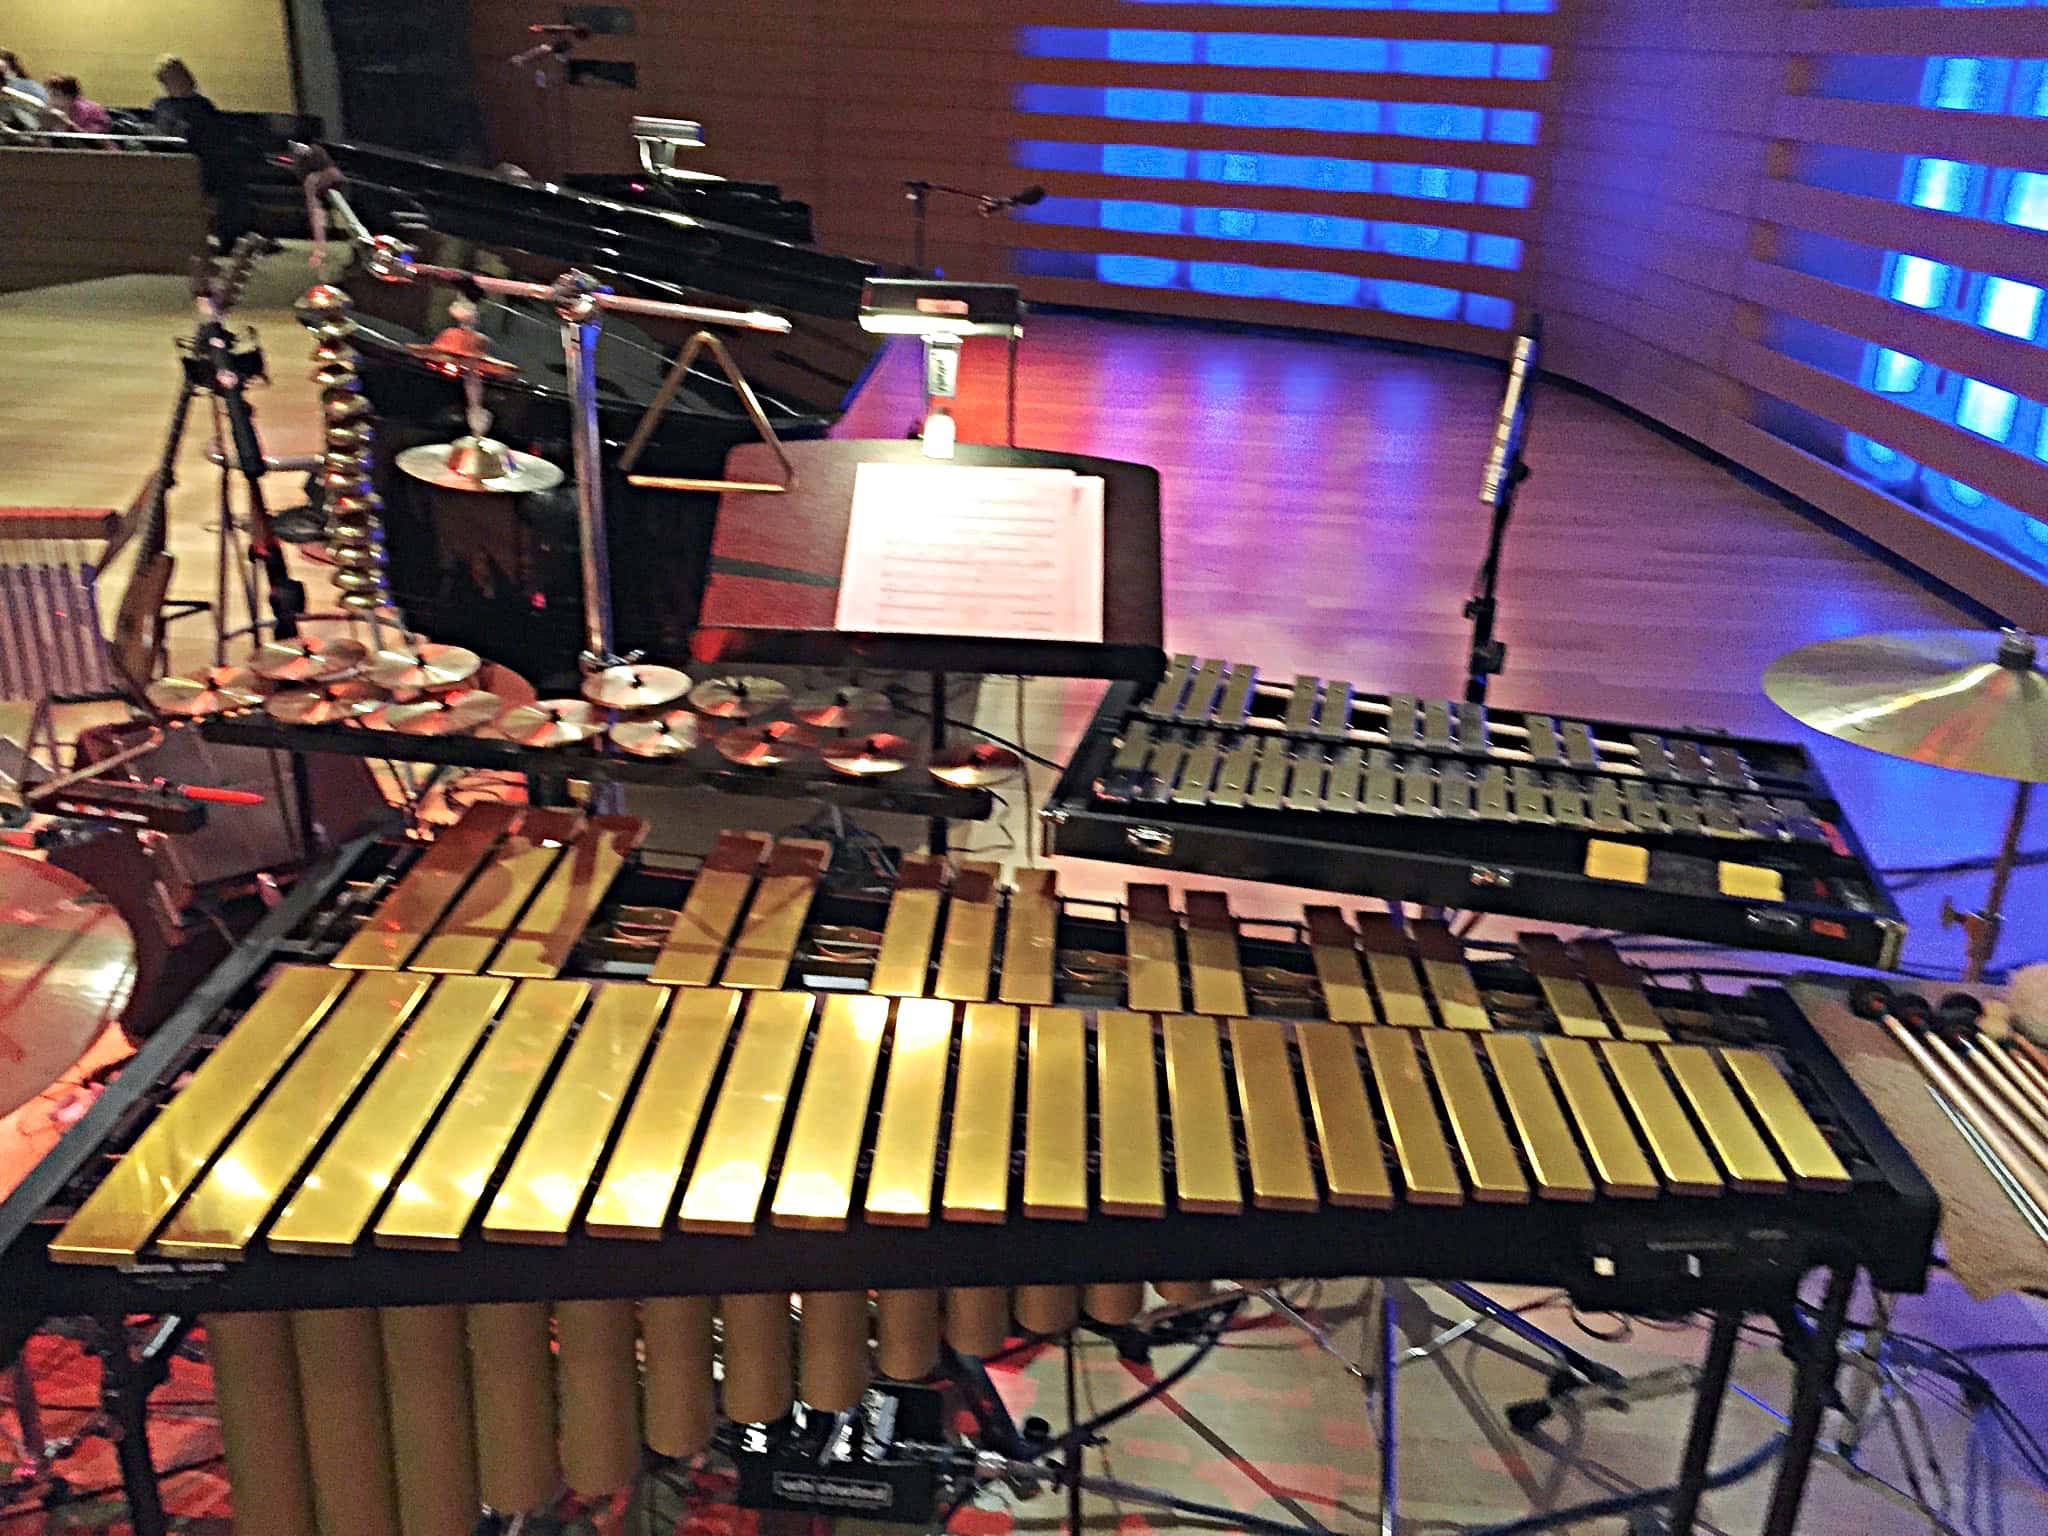 Jamie Drake's setup for Uncovered: The Music of Simon and Garfunkel as put on by Acting Up Stage Company in Toronto, Canada, at Koerner Hall.